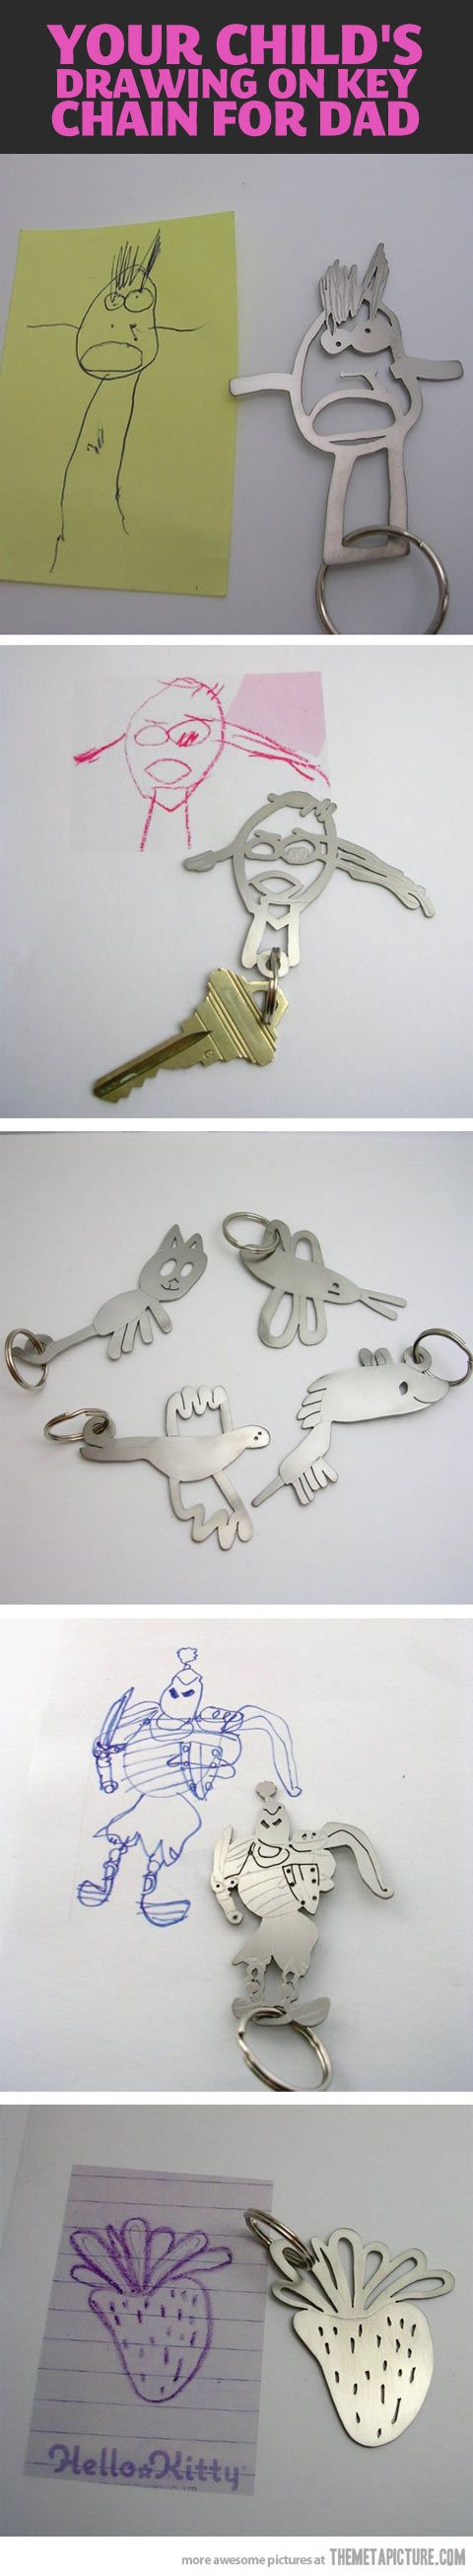 Your child's drawing on a key chain. Cute idea.